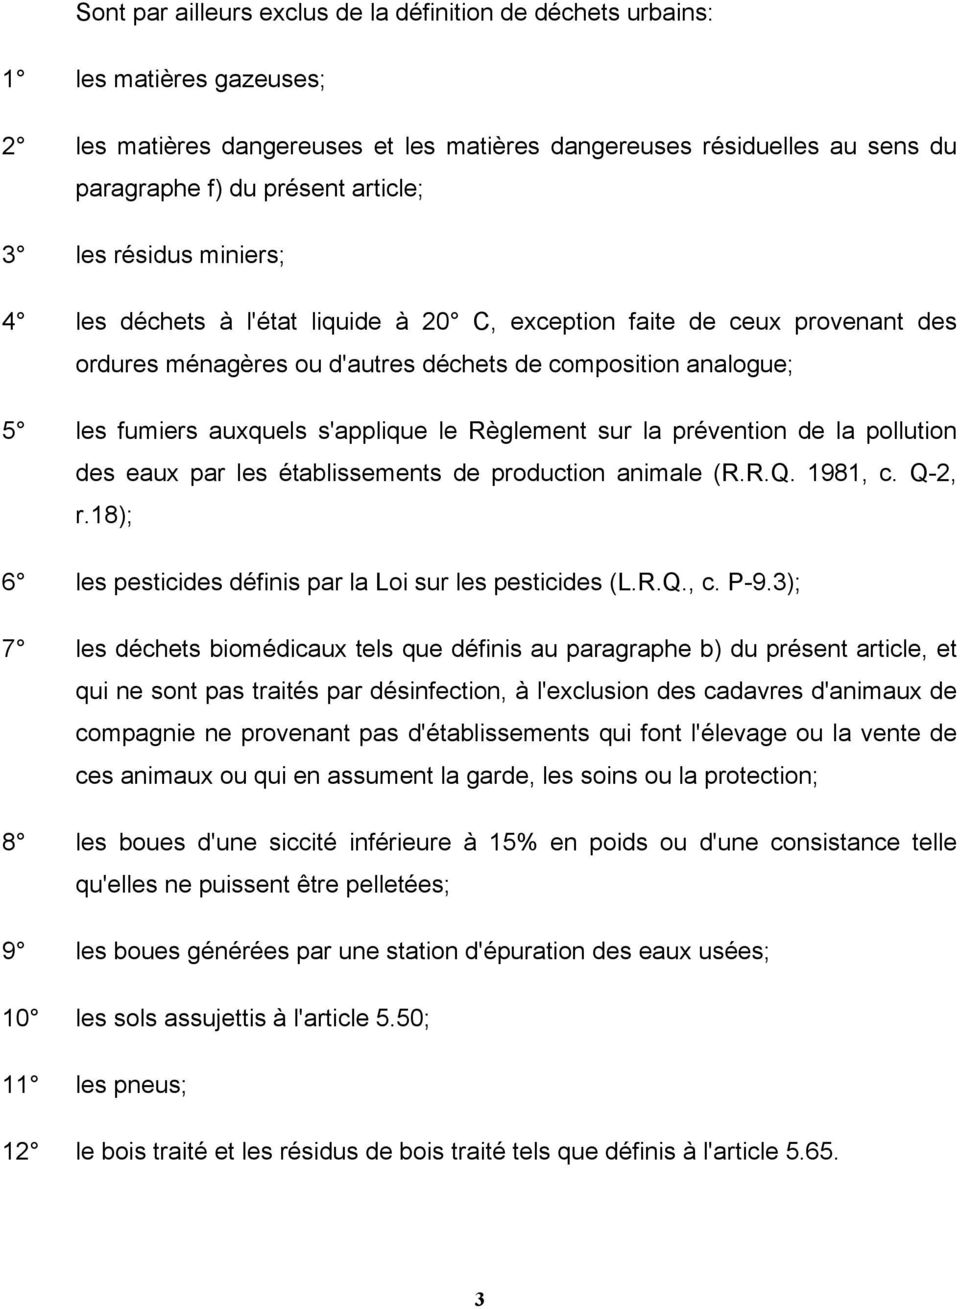 Règlement sur la prévention de la pollution des eaux par les établissements de production animale (R.R.Q. 1981, c. Q-2, r.18); 6 les pesticides définis par la Loi sur les pesticides (L.R.Q., c. P-9.